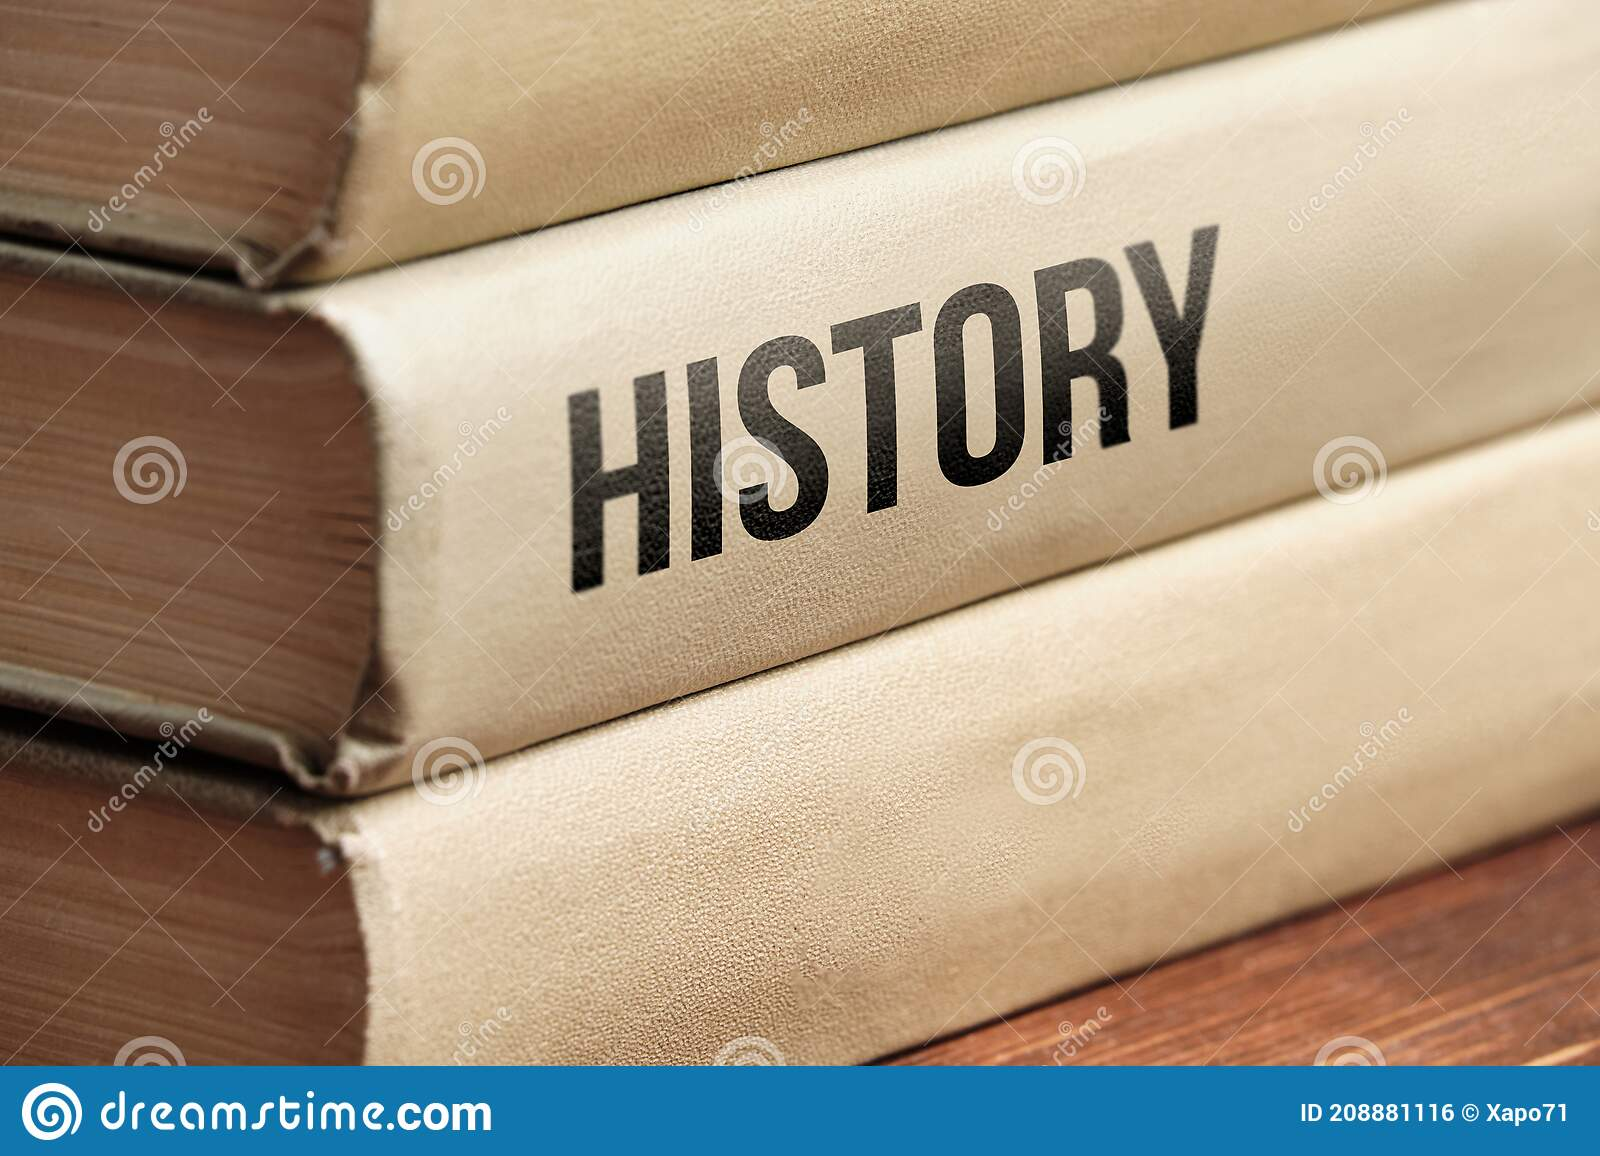 2 361 History Subject Photos Free Royalty Free Stock Photos From Dreamstime